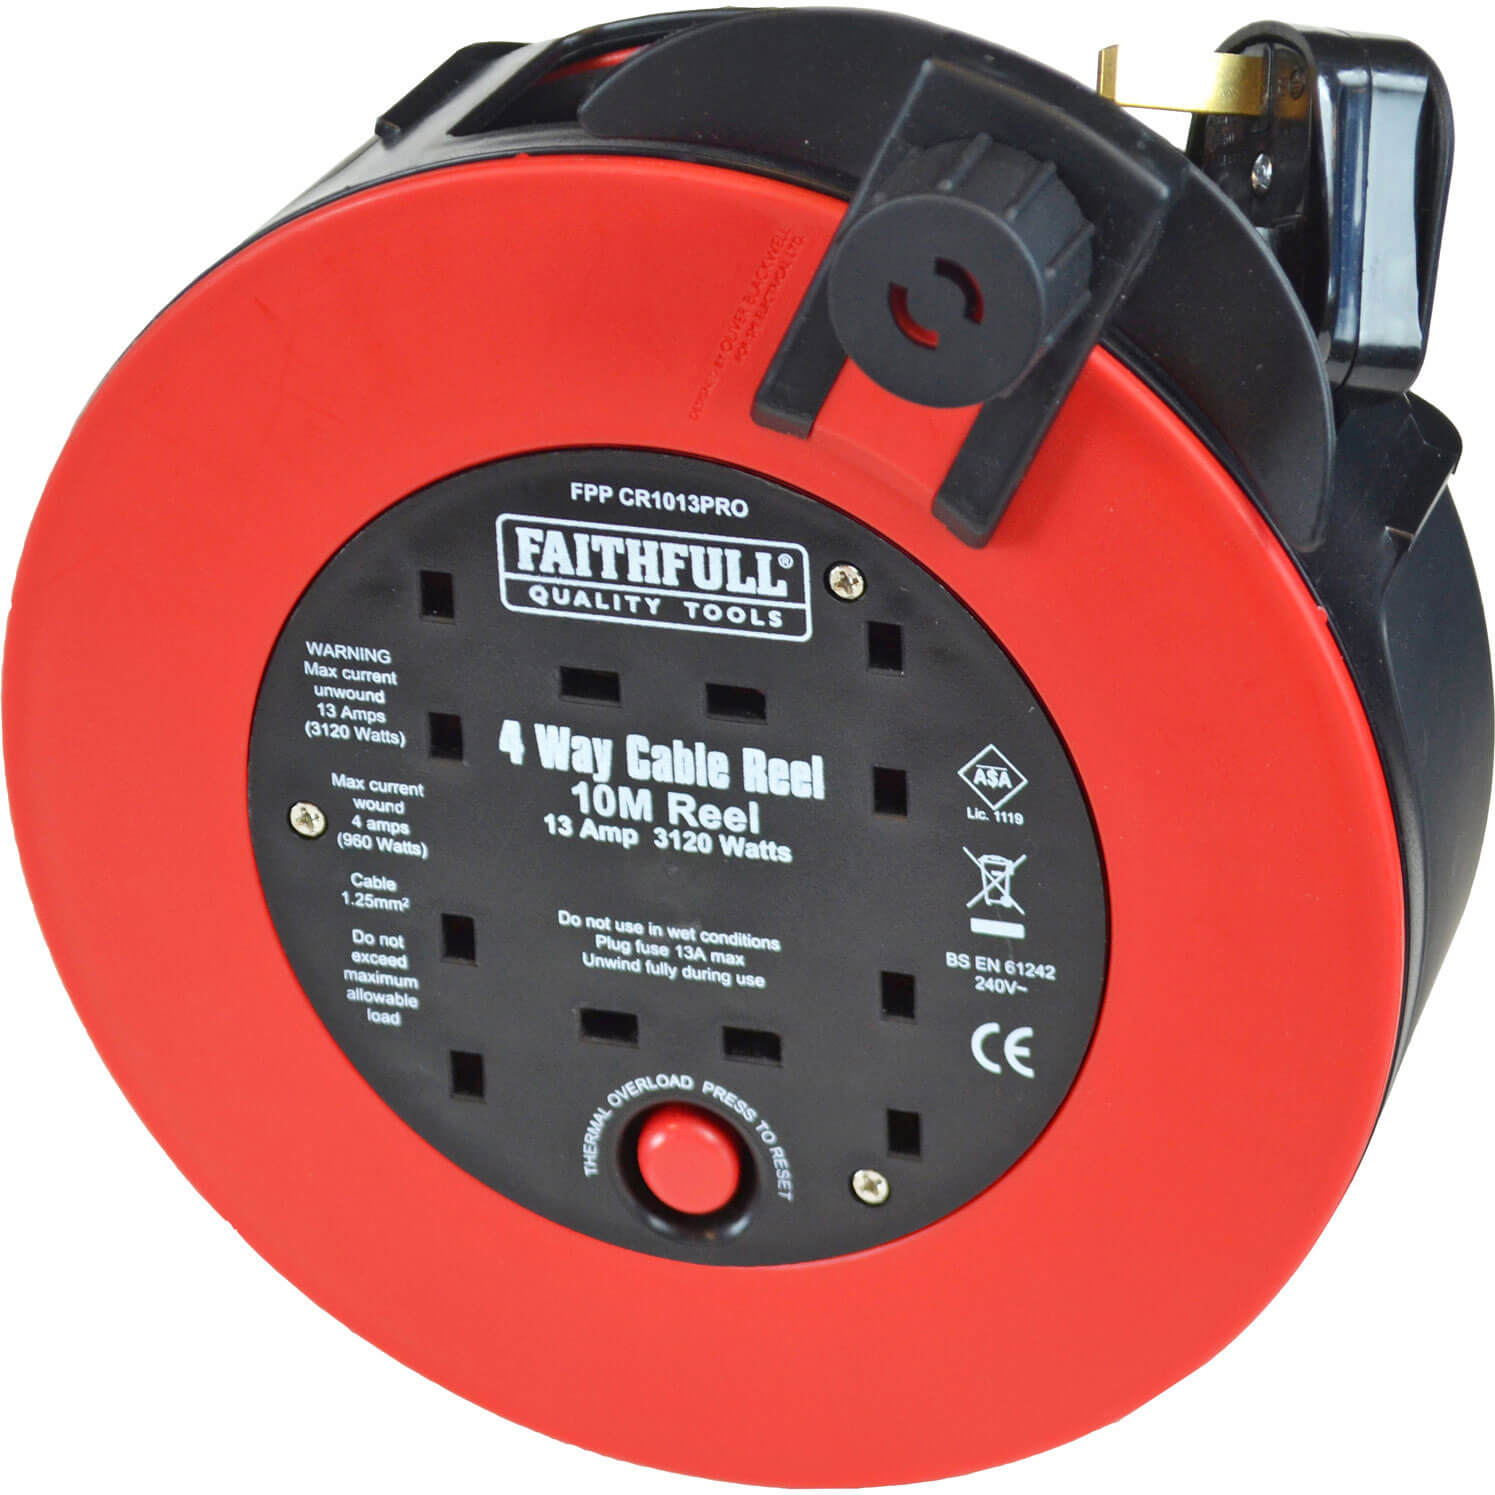 Faithfull 4 Socket Fast Rewind Cable Reel 10m 13amp 240v